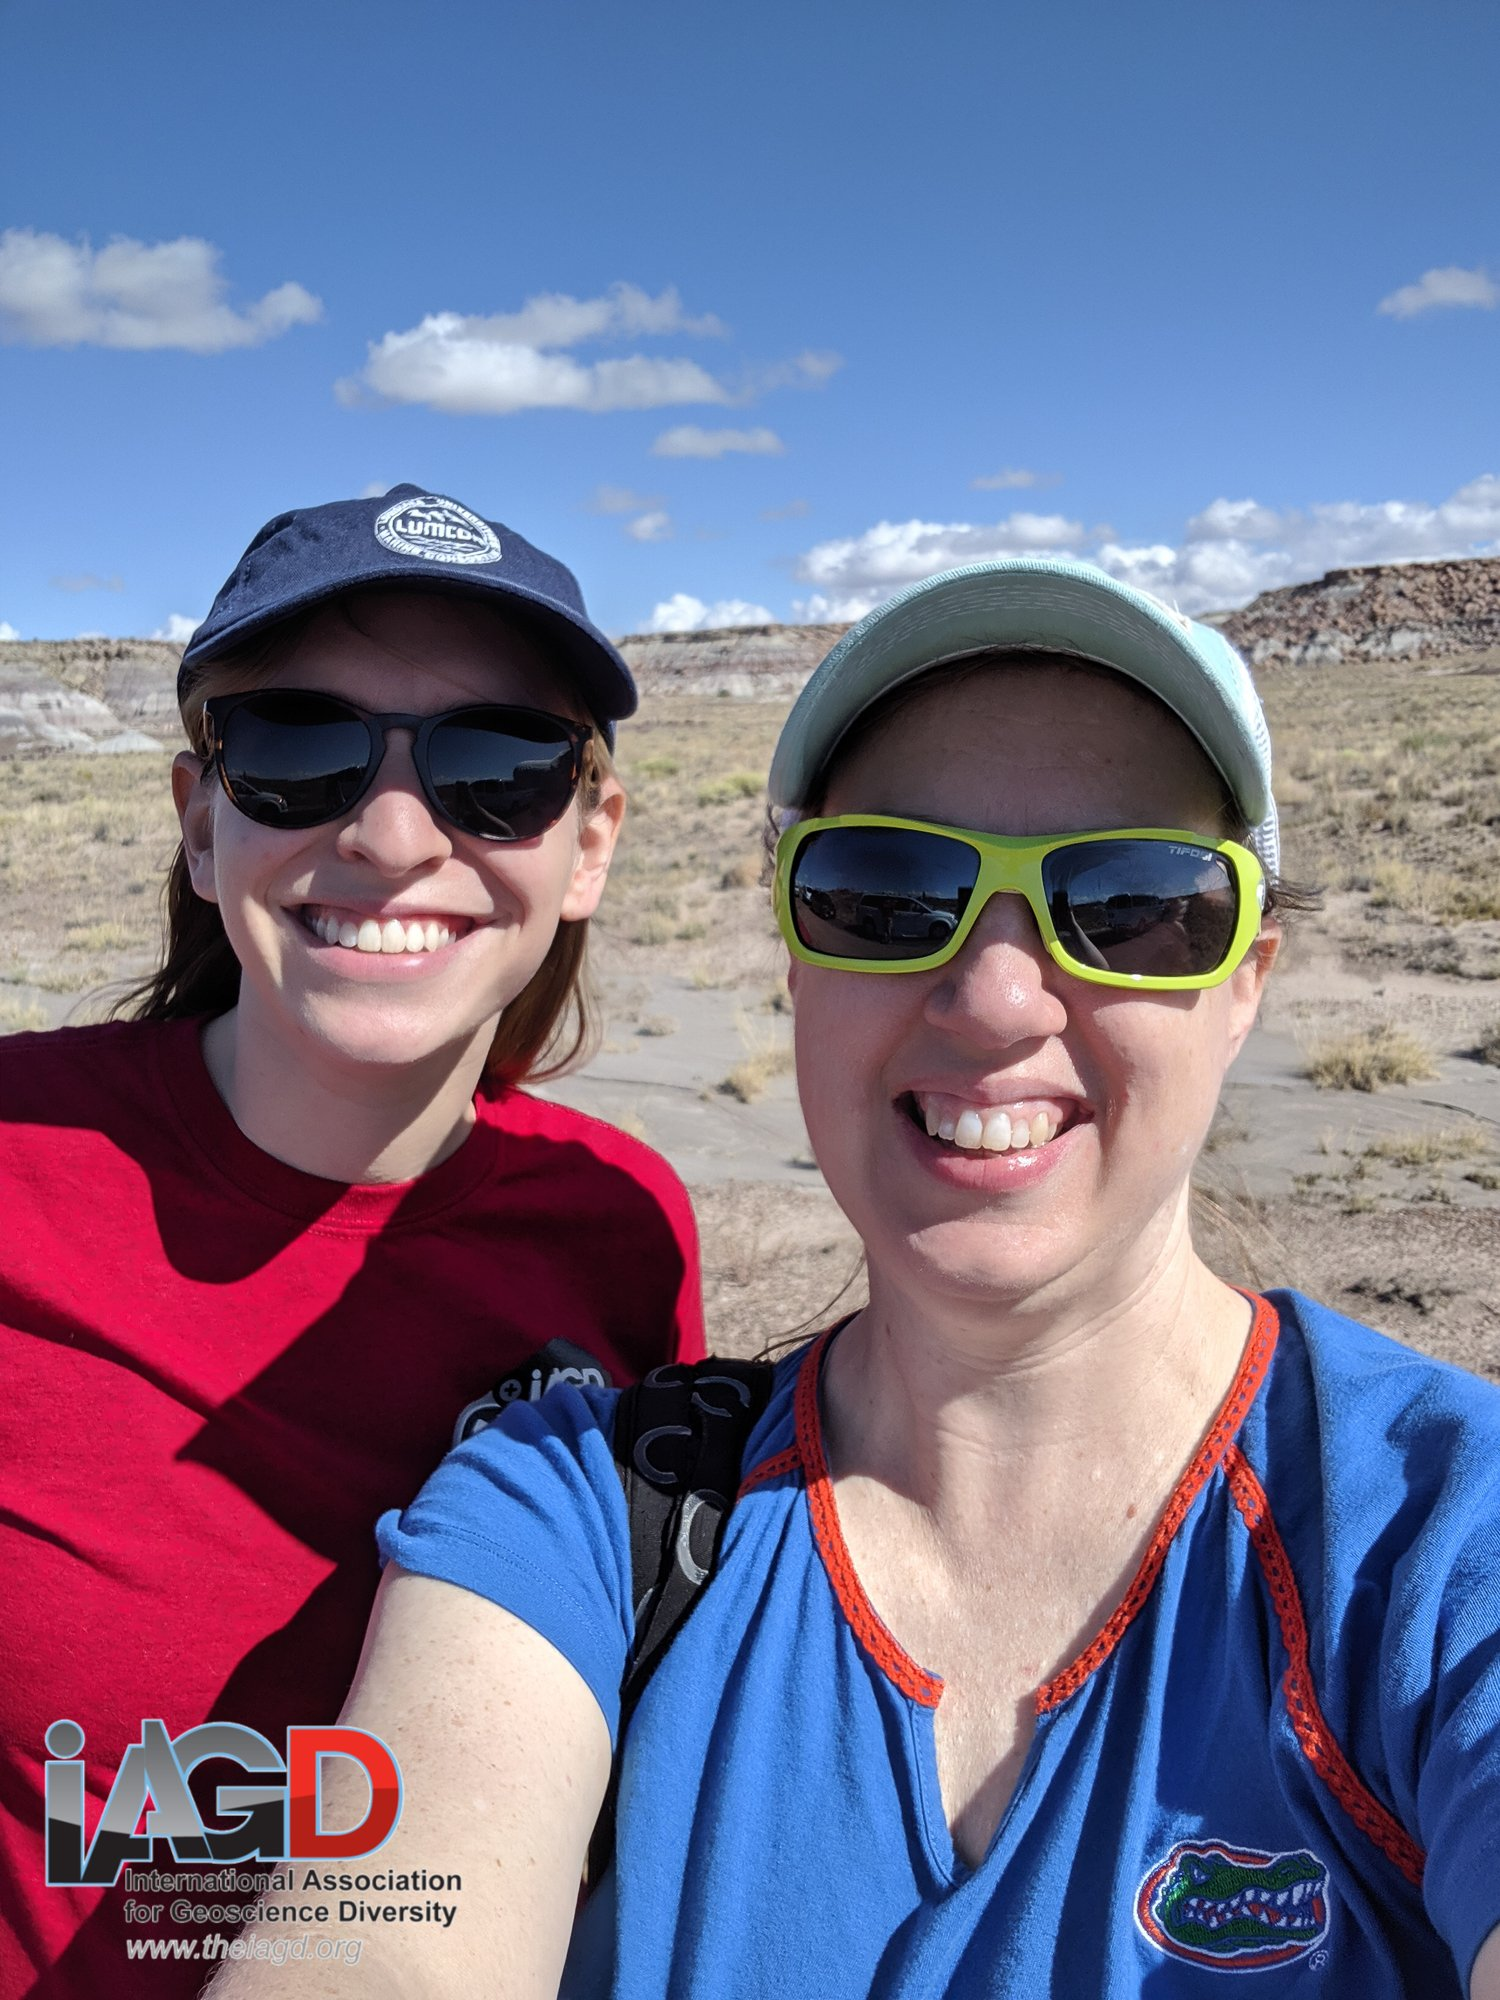 two women wearing sunglasses and hats are smiling. they're outside in the desert.